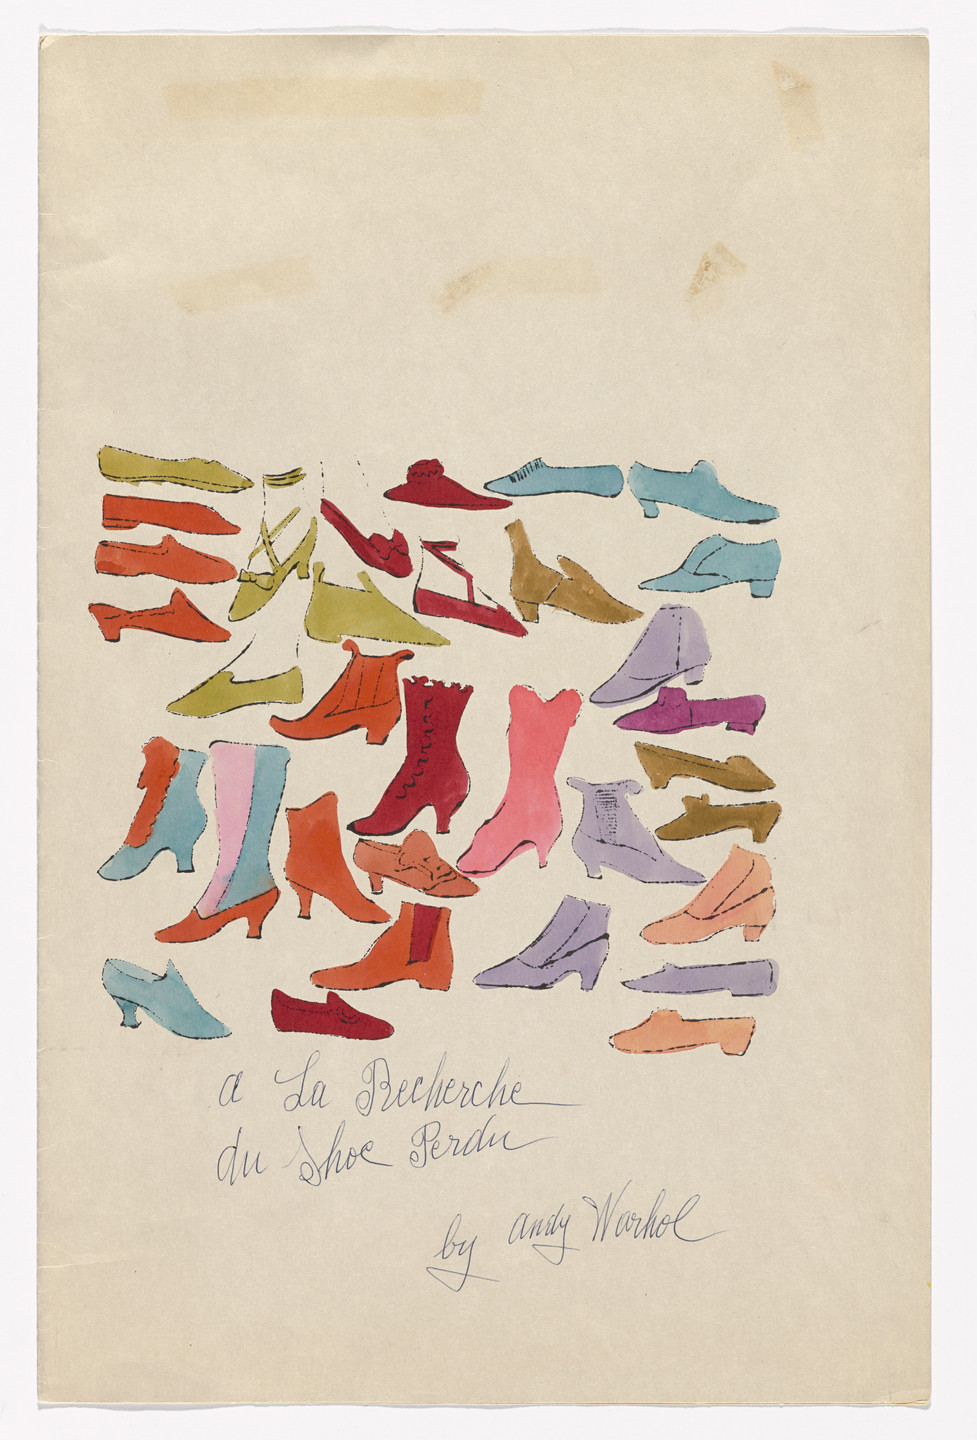 Andy Warhol. Cover from À la recherche du shoe perdu. c. 1955